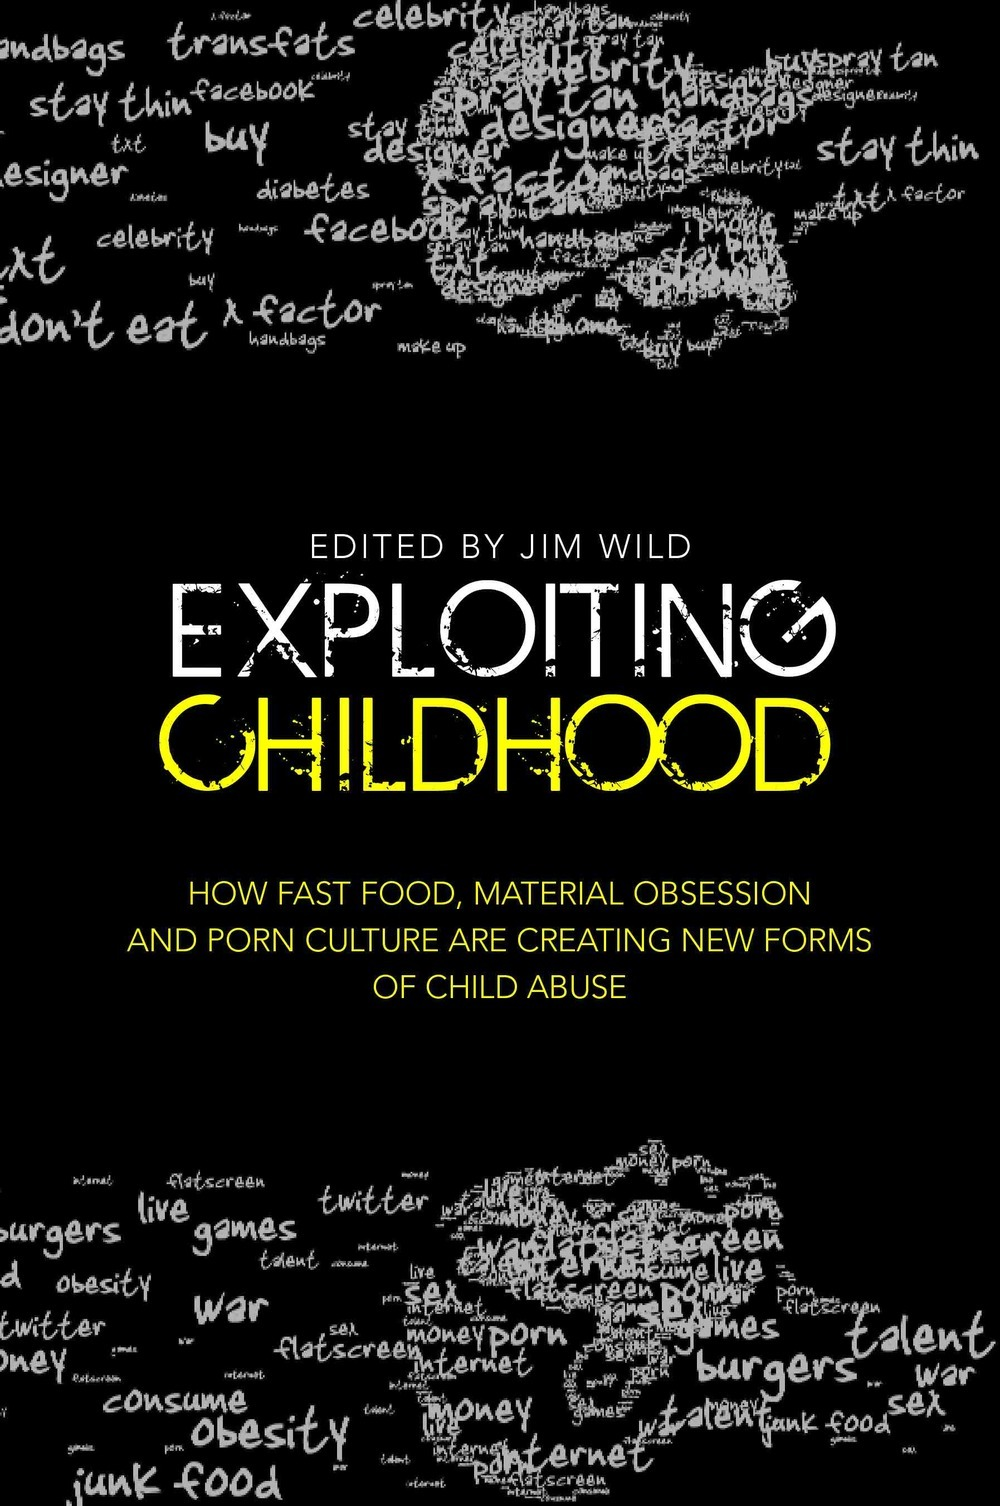 Exploiting Childhood How Fast Food,  Material Obsession and Porn Culture are Creating New Forms of Child Abuse